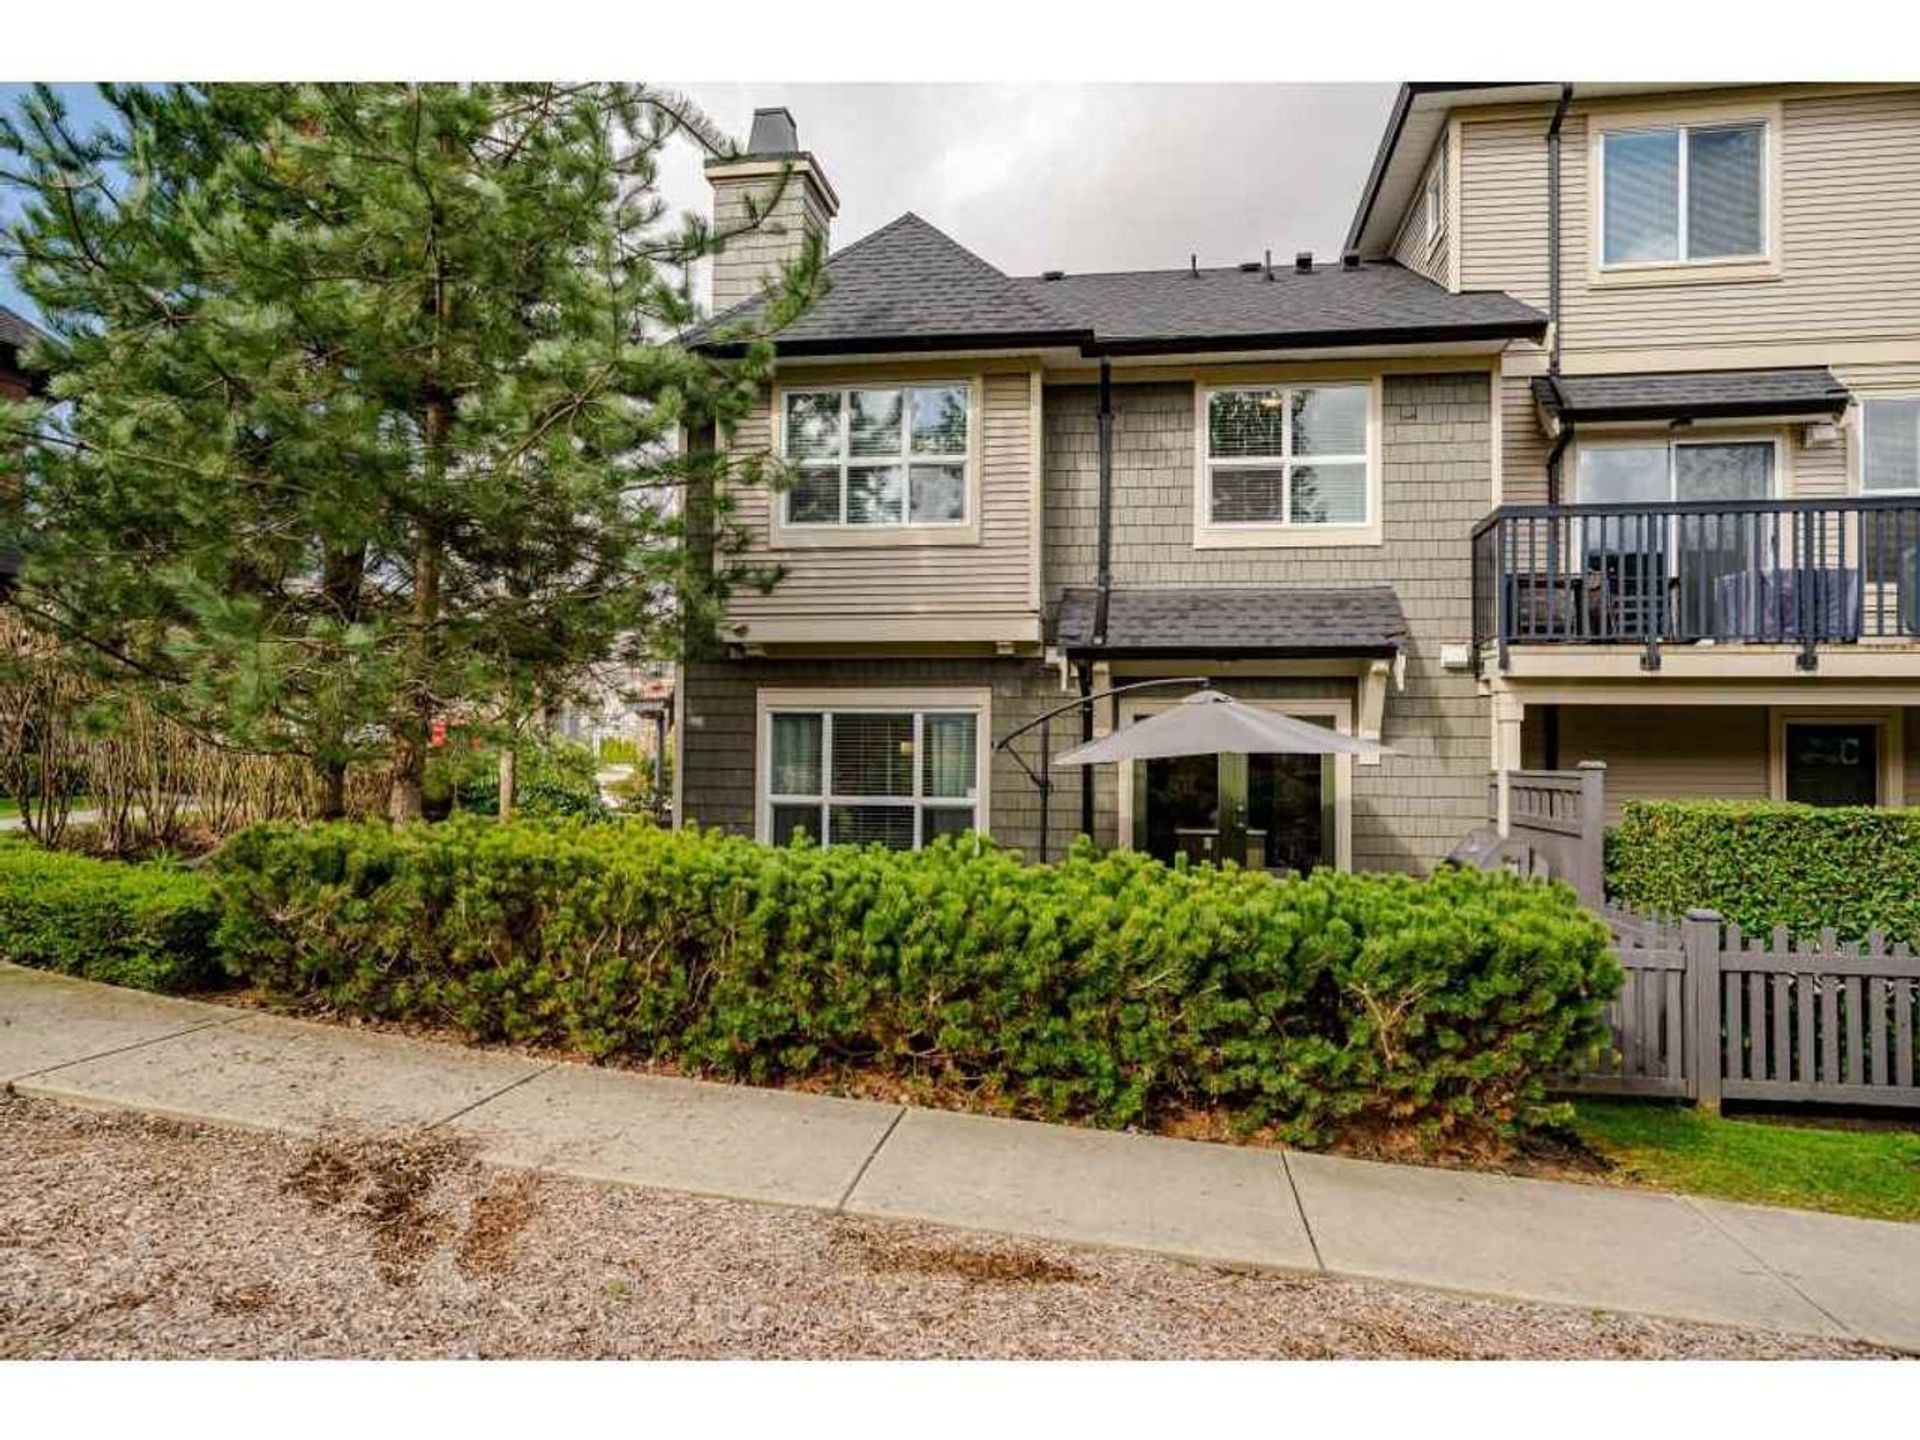 7938-210-street-willoughby-heights-langley-27 at 10 - 7938 209 Street, Willoughby Heights, Langley